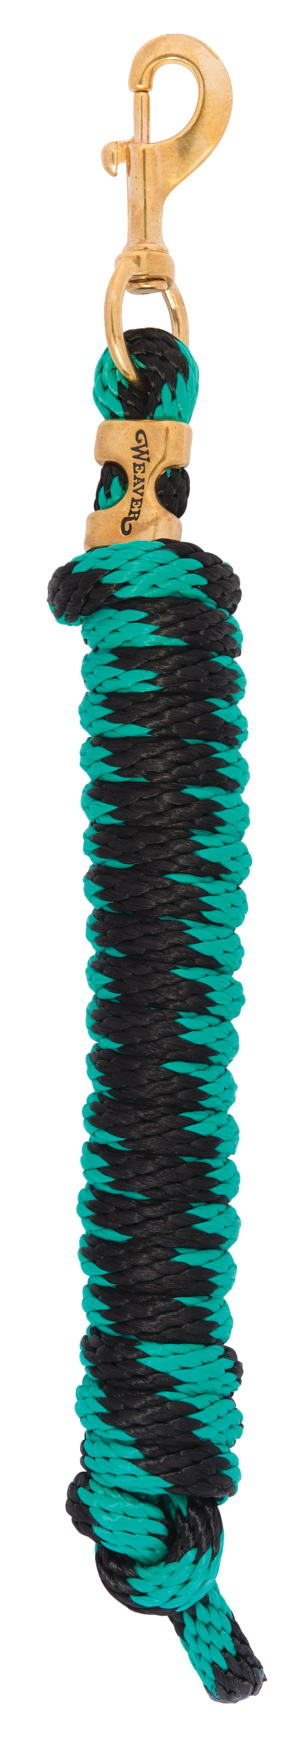 Weaver Leather Poly Rope Black Green